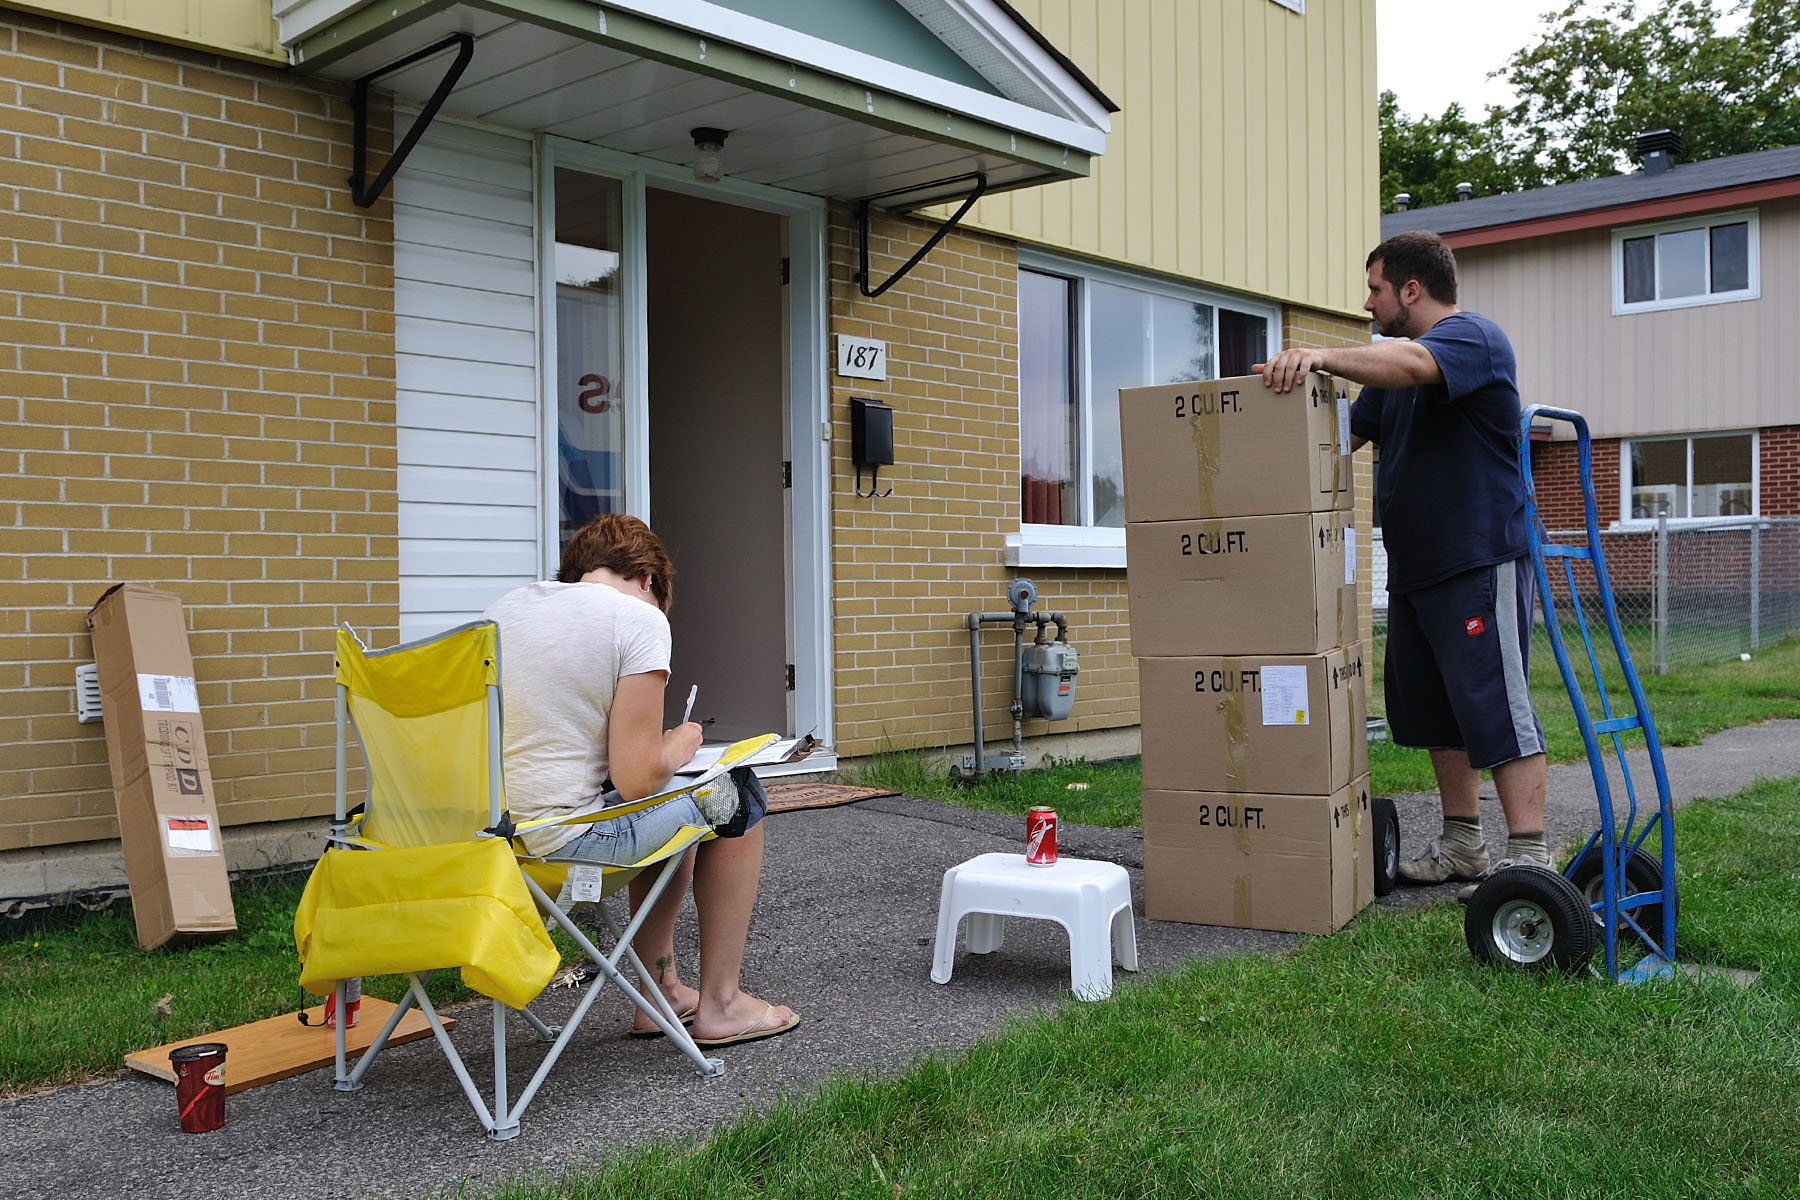 A woman writing on a clipboard sits in a lawn chair in front of a house with an open door, while a man standing by a dolly has his hands on the top box in a stack of four, and looks through the open door.